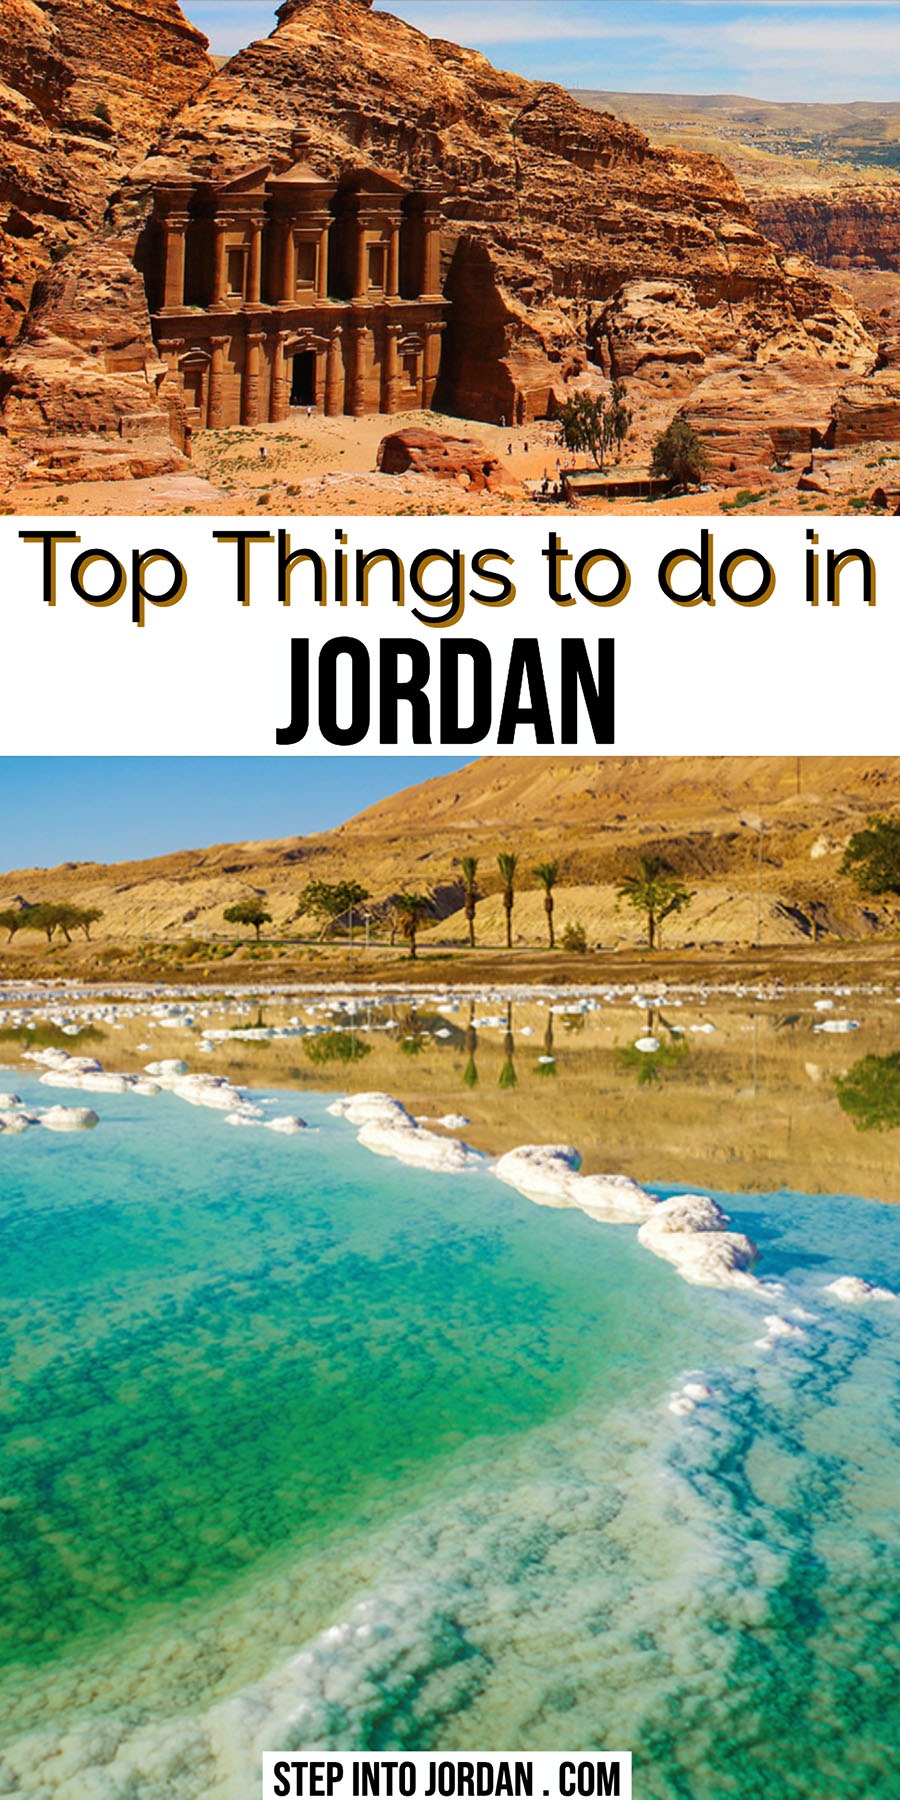 Top Things to do in Jordan